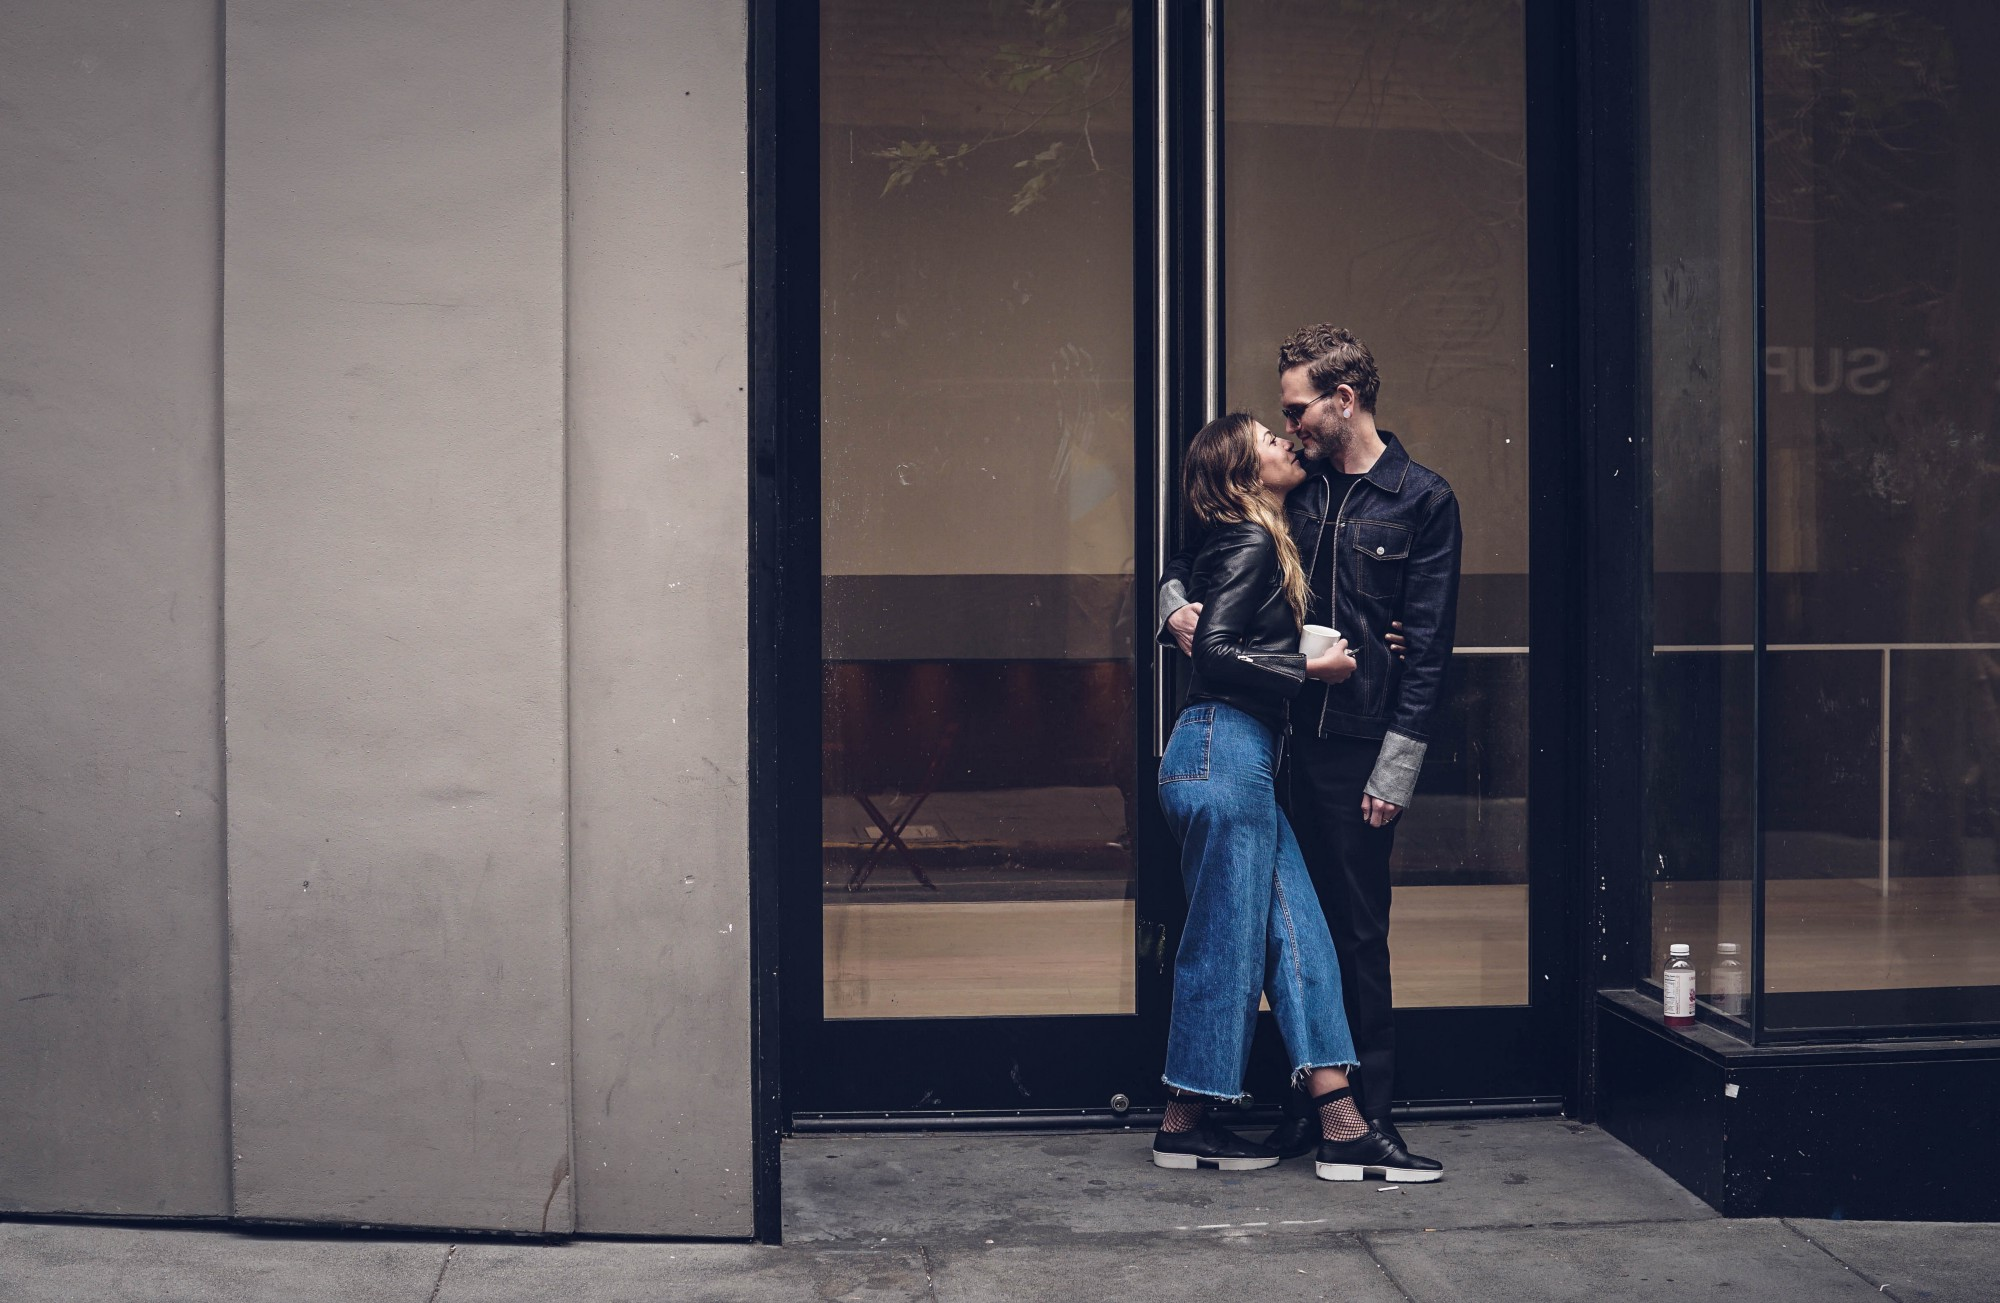 Couple about to kiss in the doorway outside a building